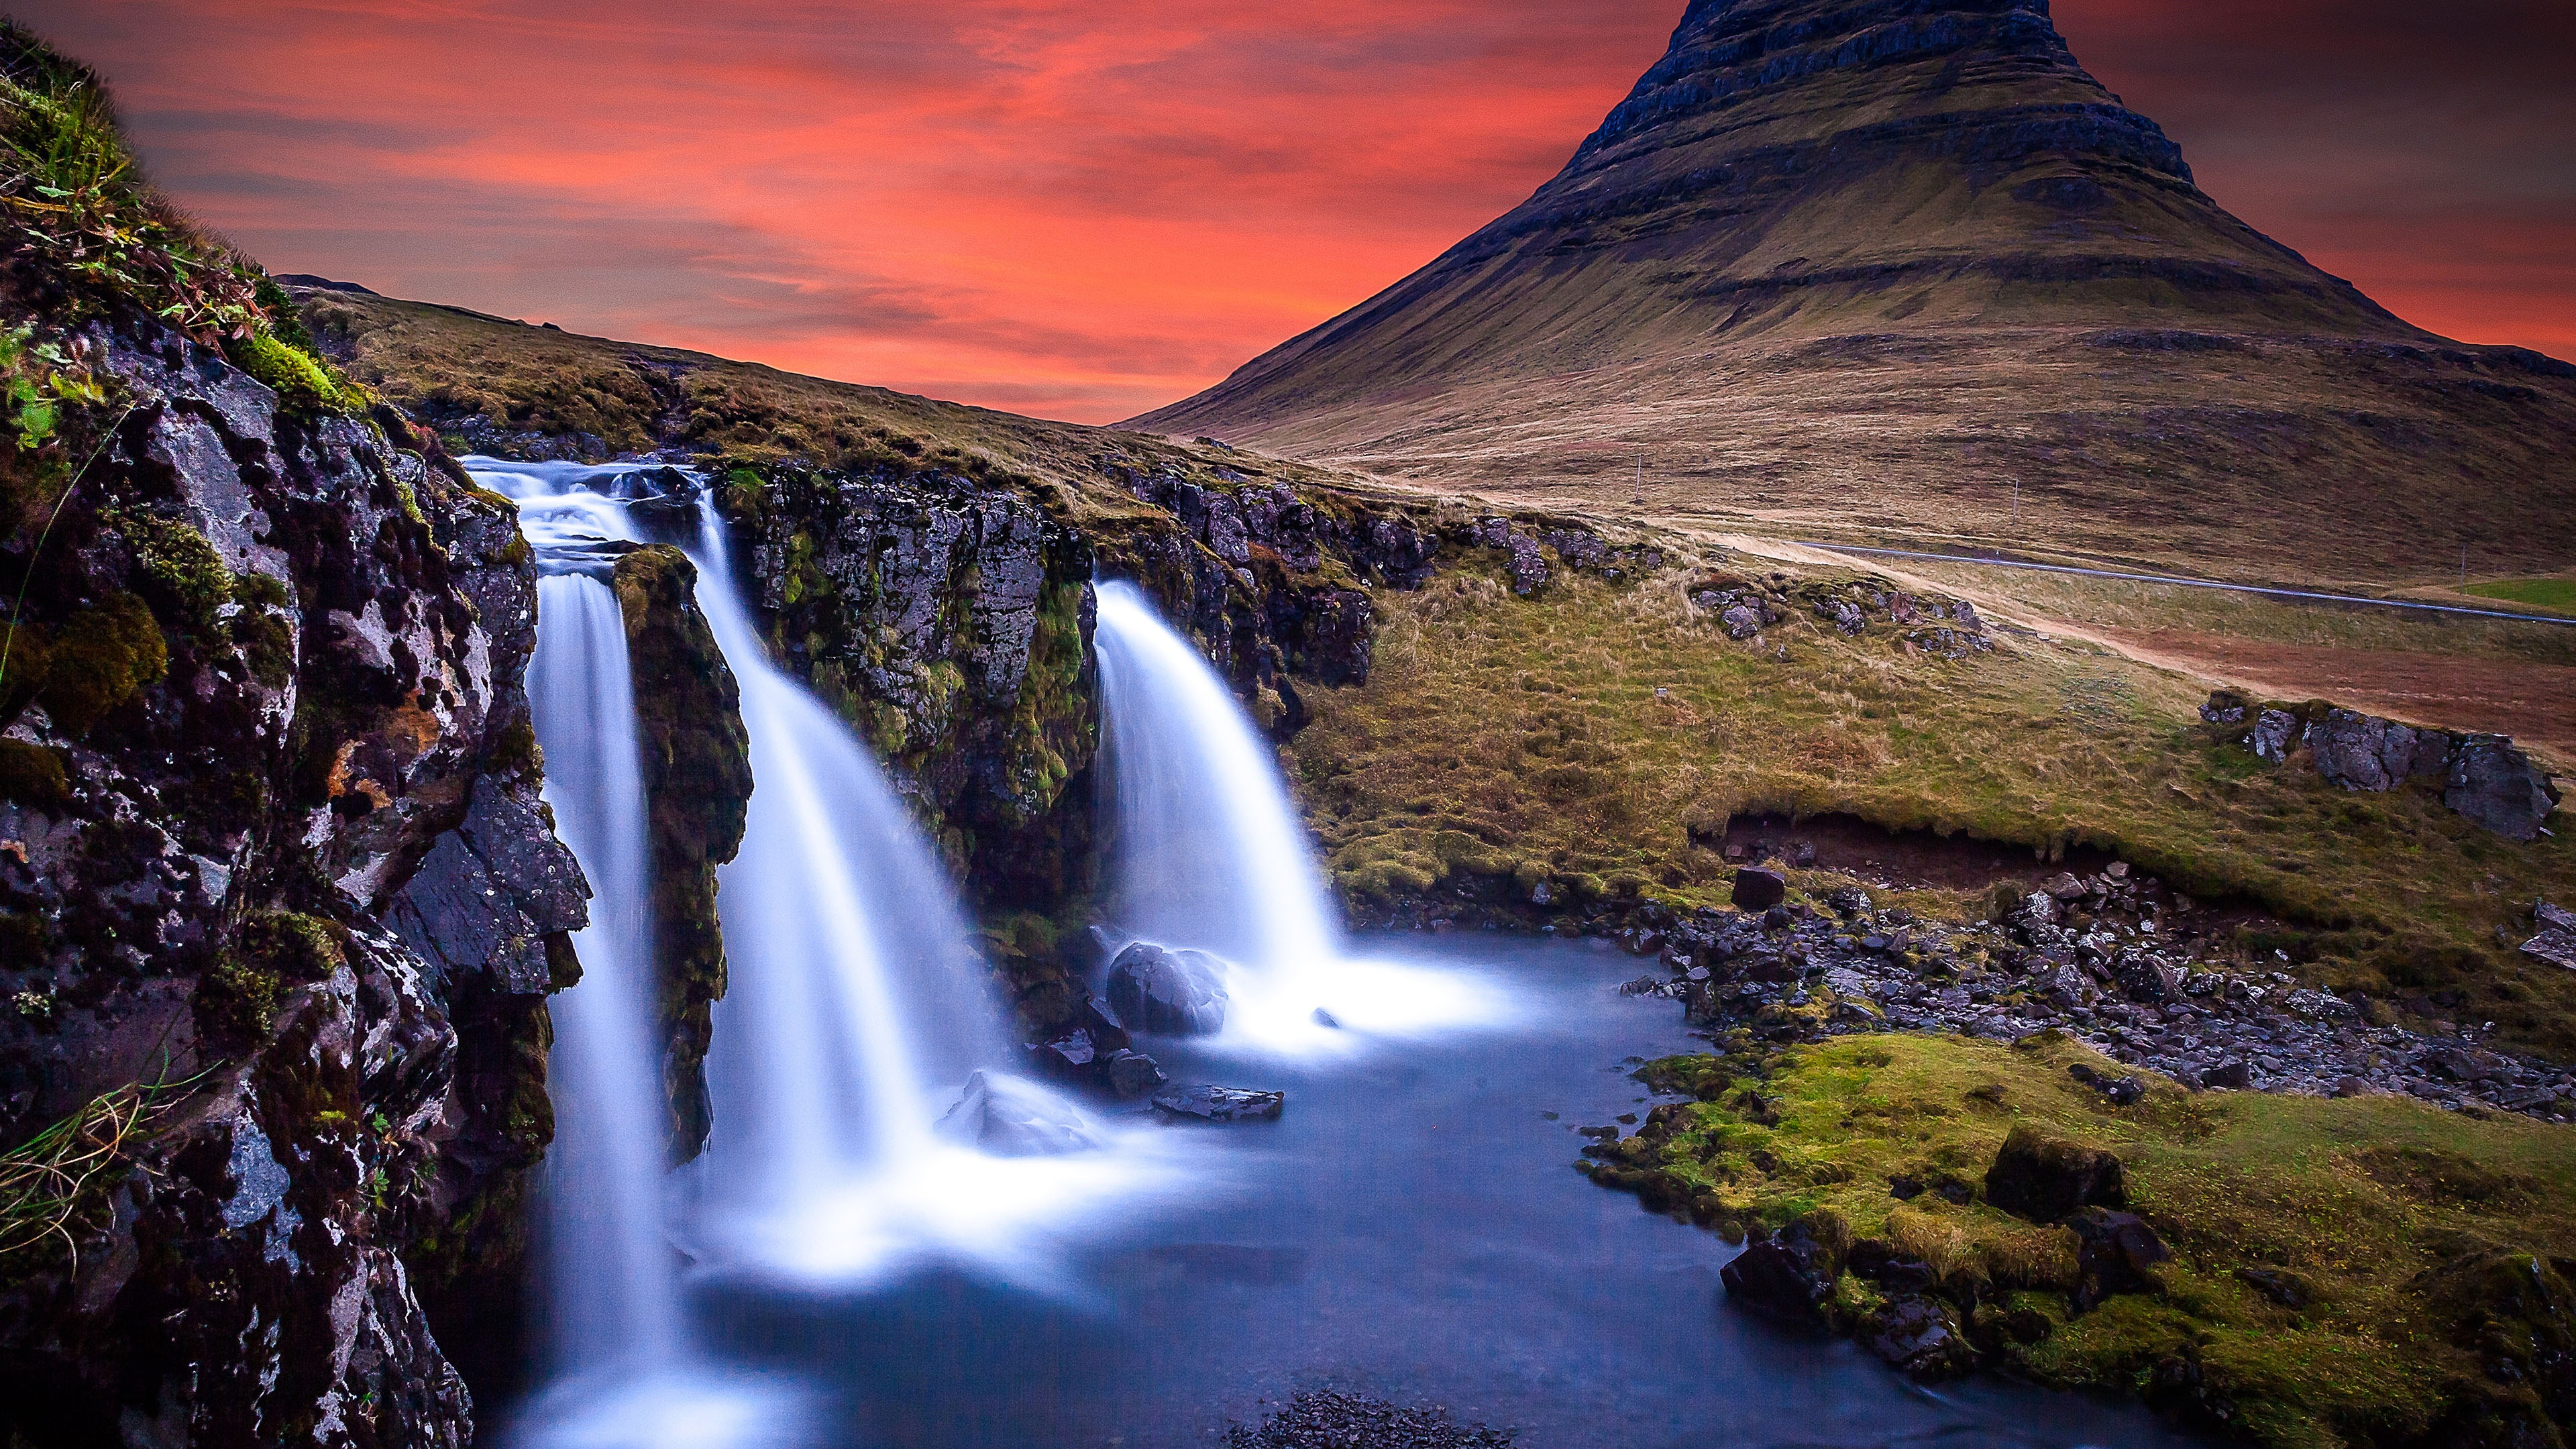 Iceland Kirkjufell Waterfall High Quality Photography Desktop Wallpaper